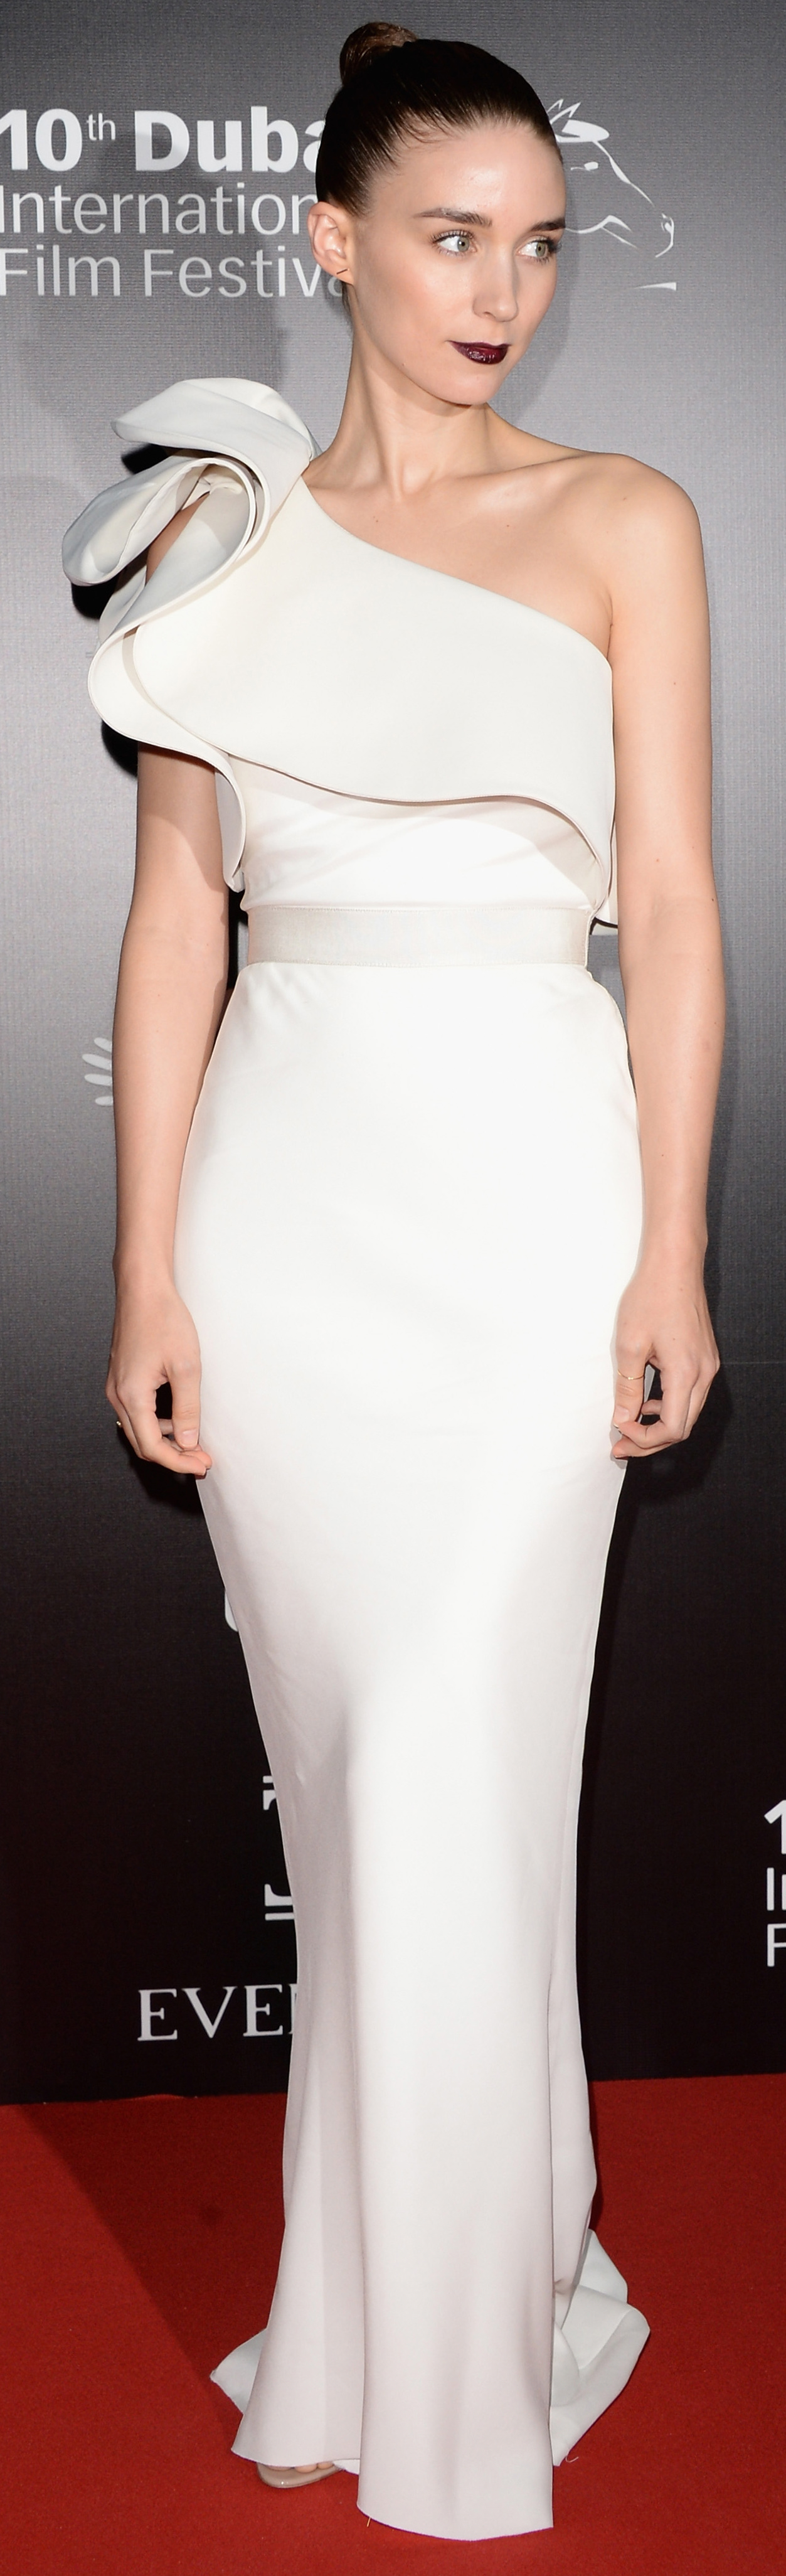 Rooney Mara was gorgeous in white custom Lanvin